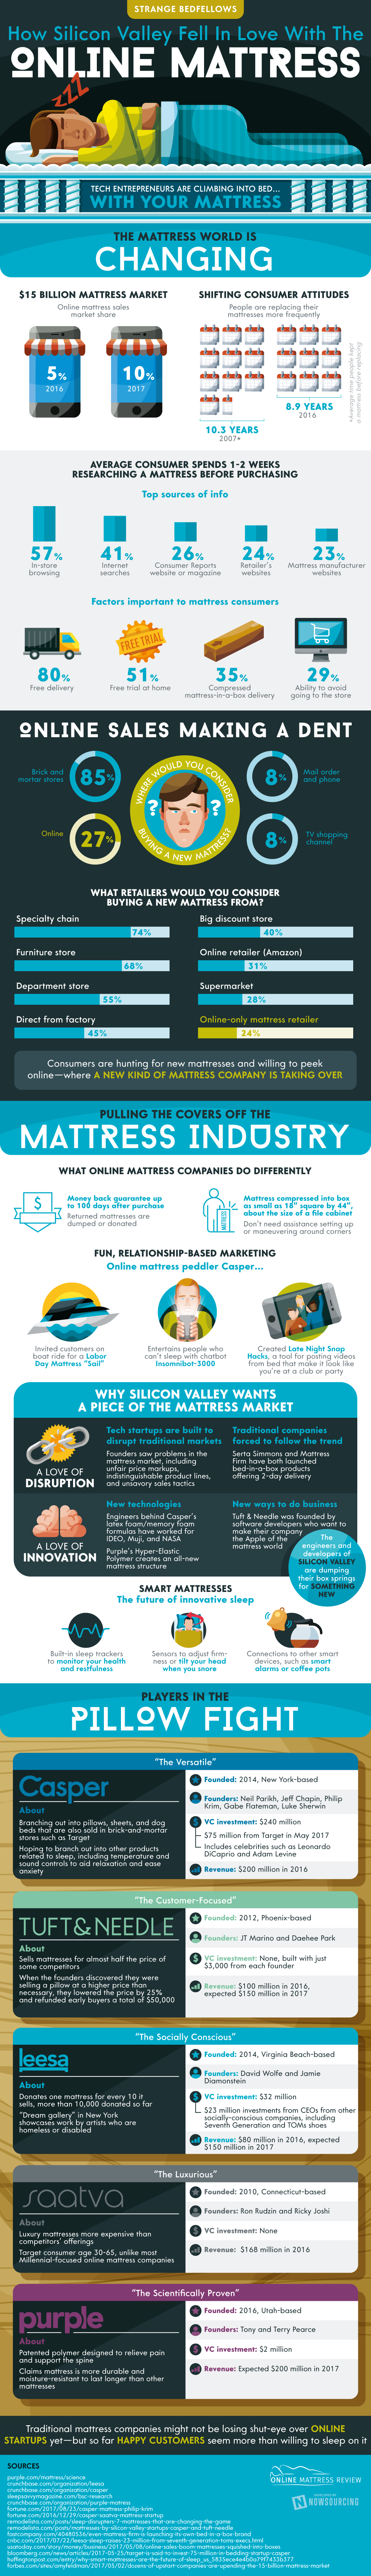 Why Silicon Valley Fell In Love With Online Mattresses